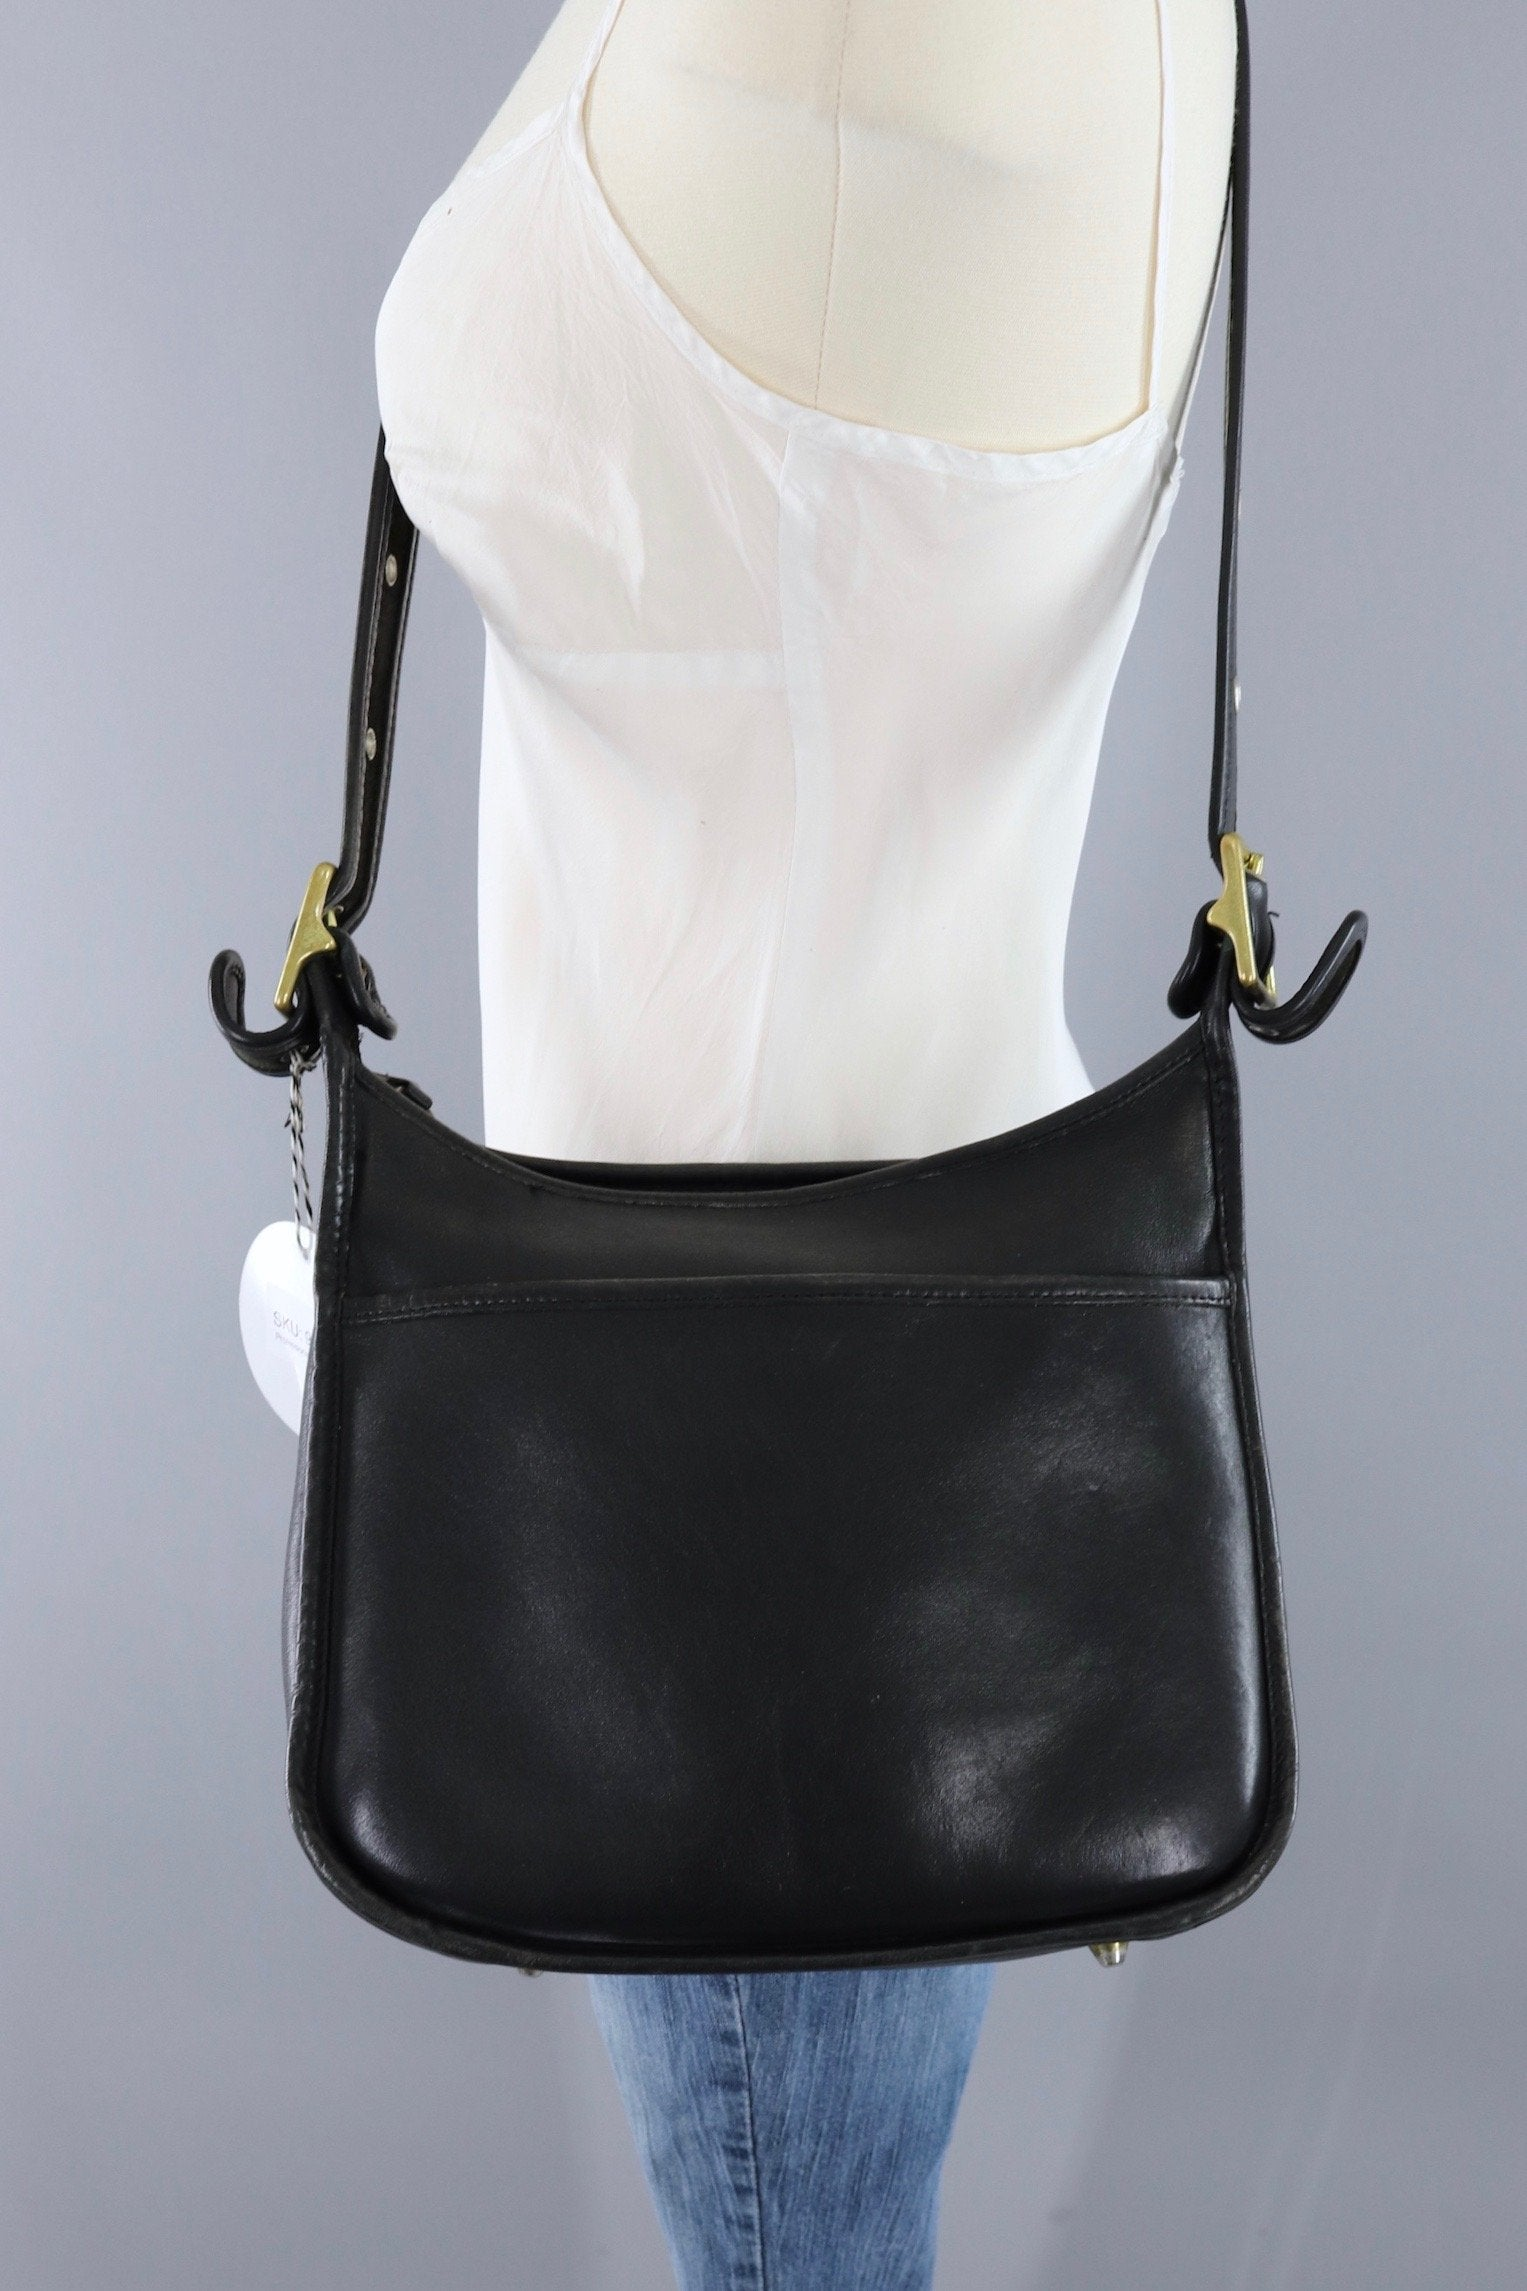 633c21a7c9c A Black Coach Bag